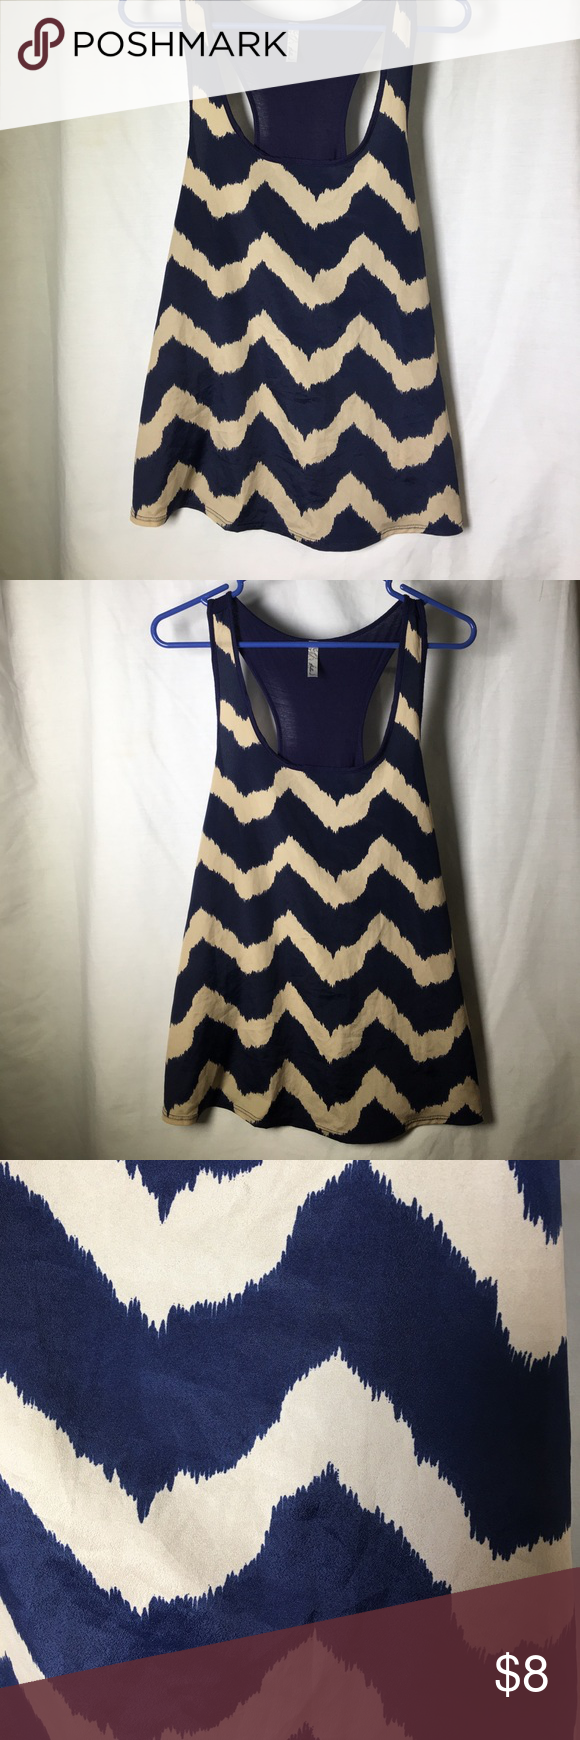 Bella d navy blue/beige chevron tank top Bella d chevron razorback tank top. Flowy style. Beige and navy blue. Size large bella d Tops Tank Tops